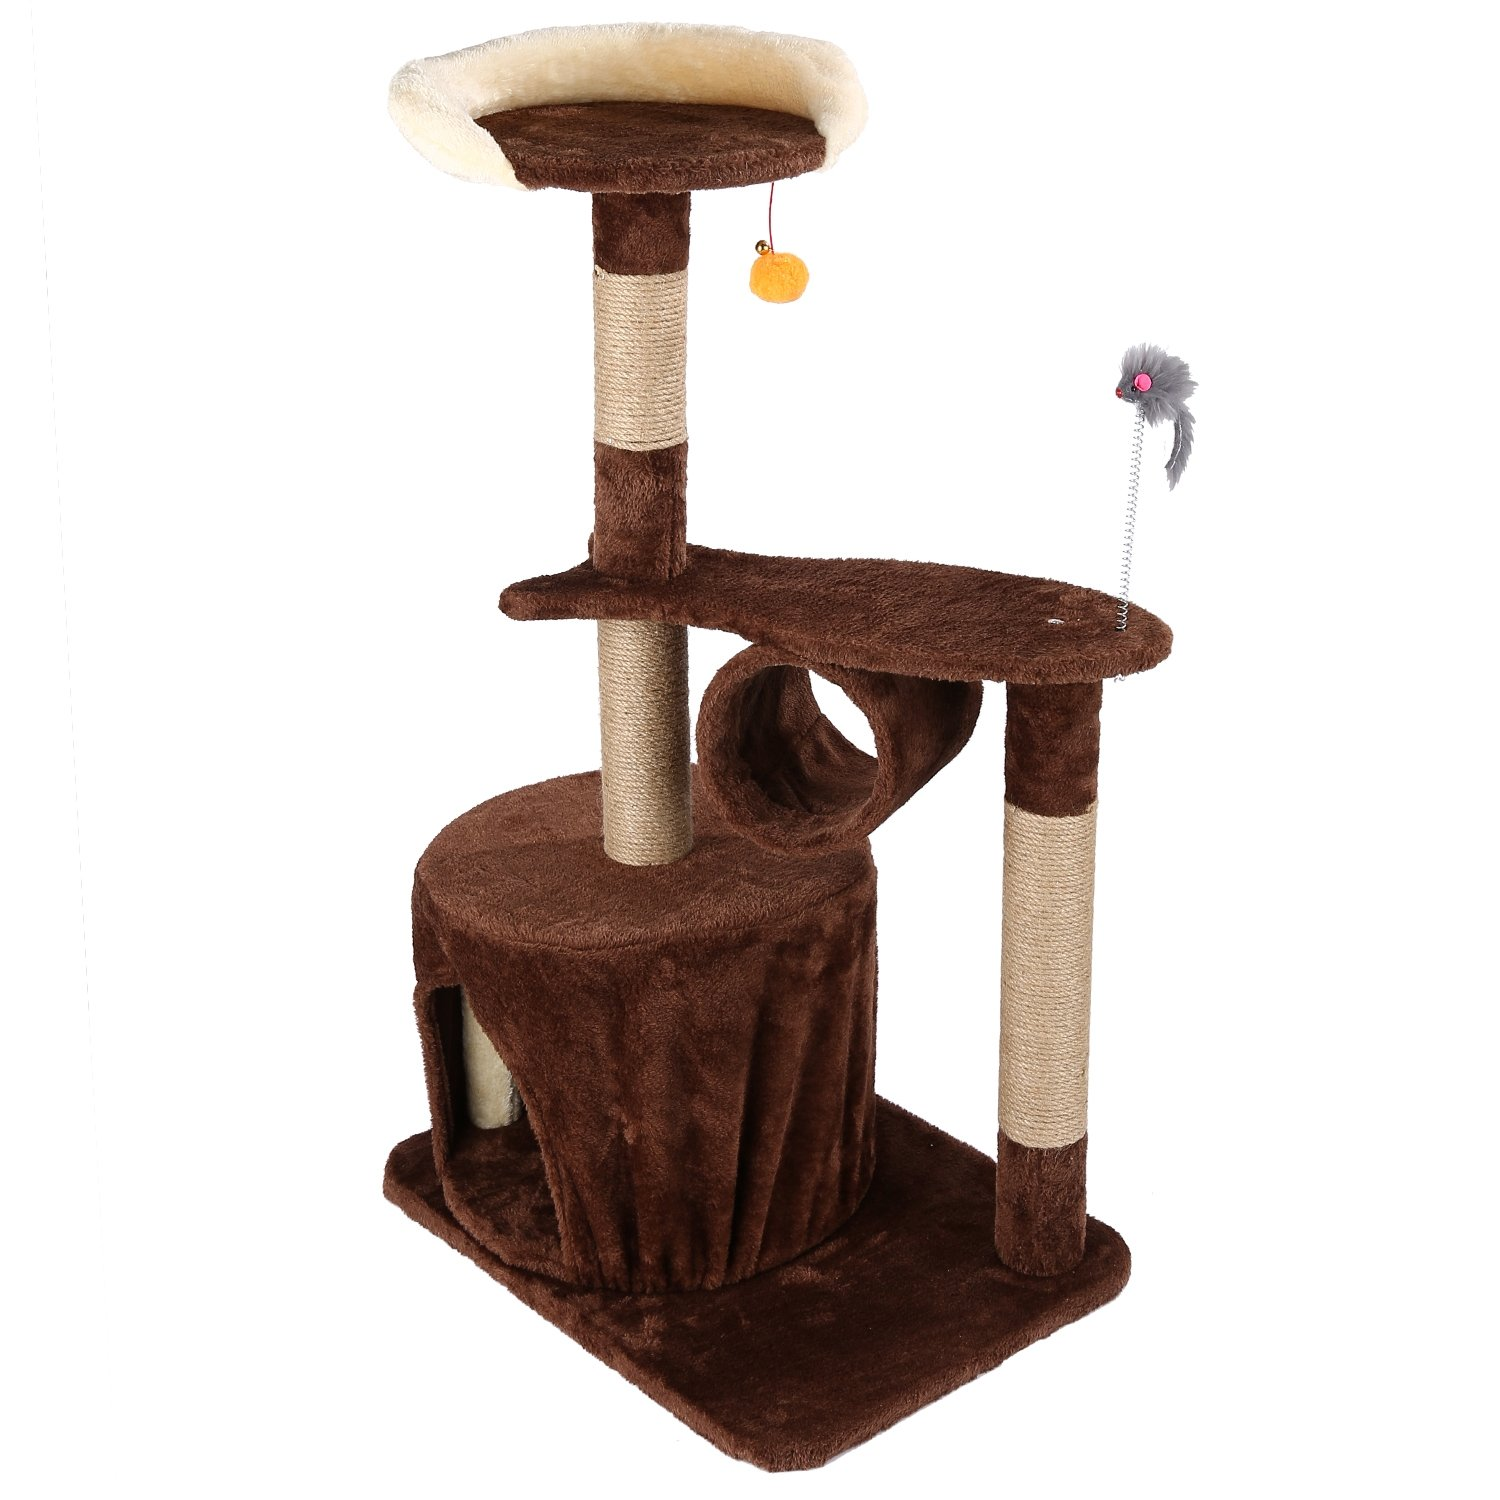 Happystore999 Pet Cat Climbing Frame Four Layers Cat Tree Scratching Wood Climbing Furniture Cat Jumping Toy for Fun M22